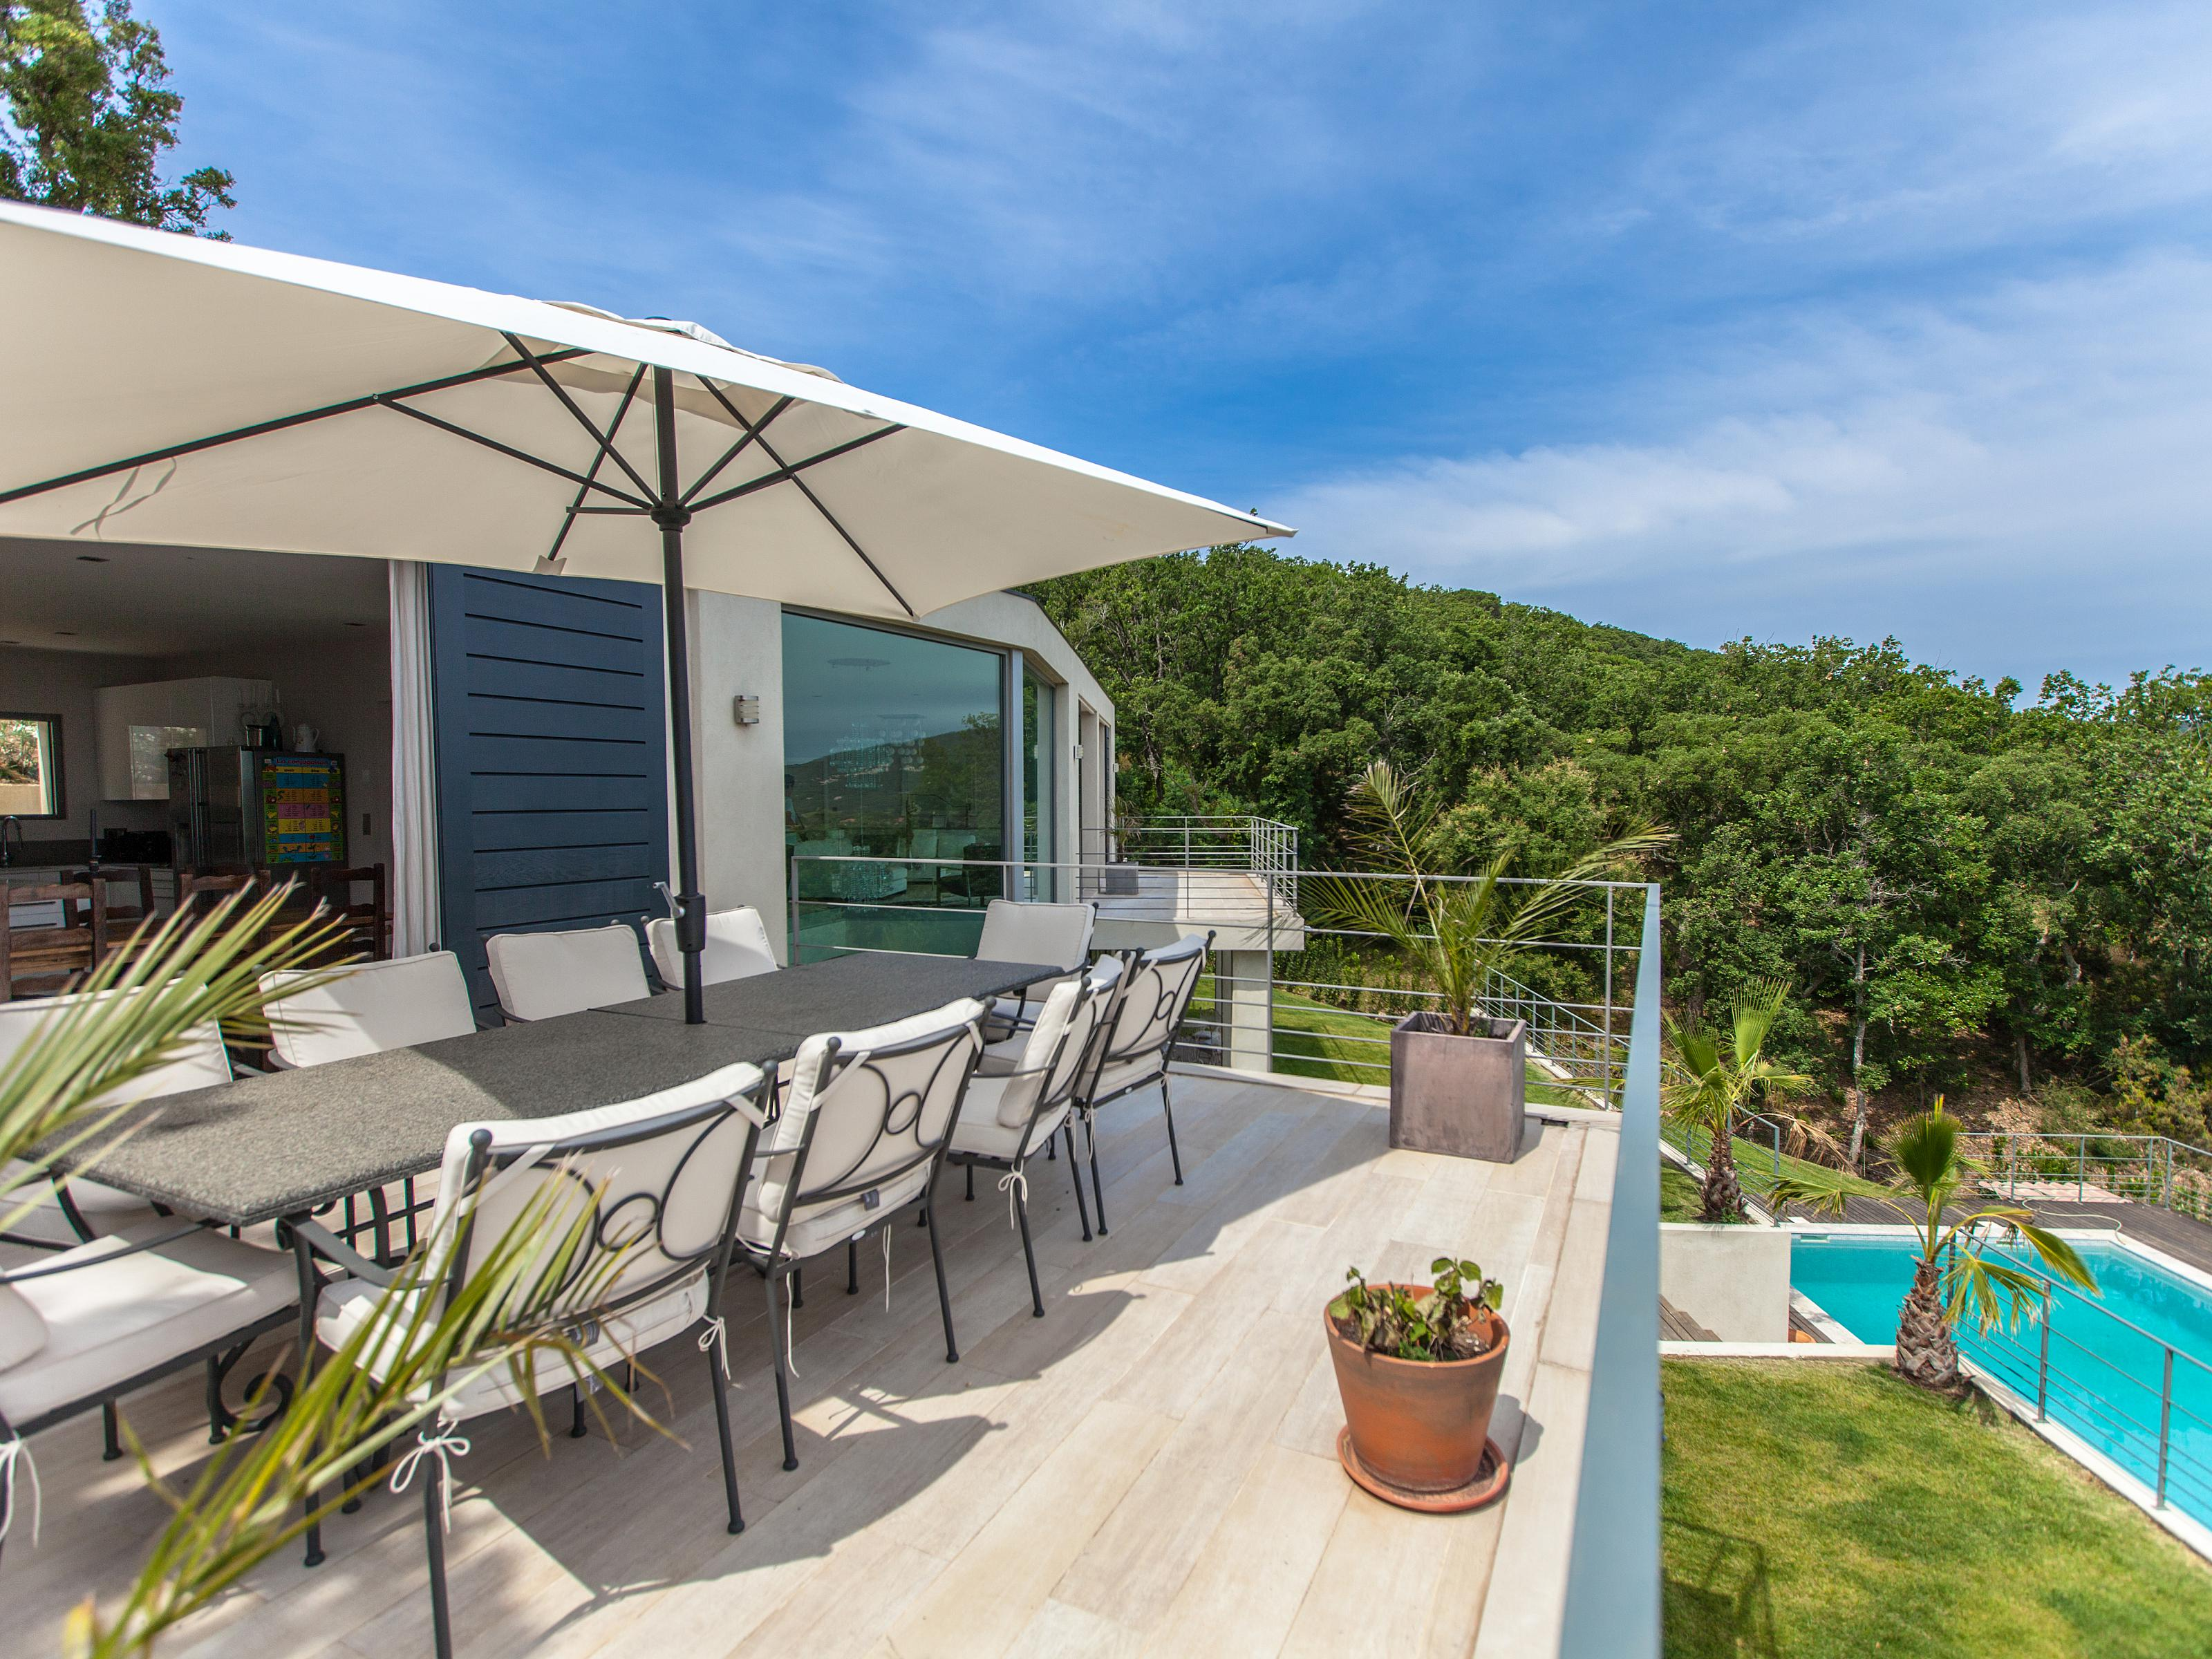 Single Family Home for Sale at Contemporary estate in Ramatuelle Ramatuelle, Provence-Alpes-Cote D'Azur 83350 France